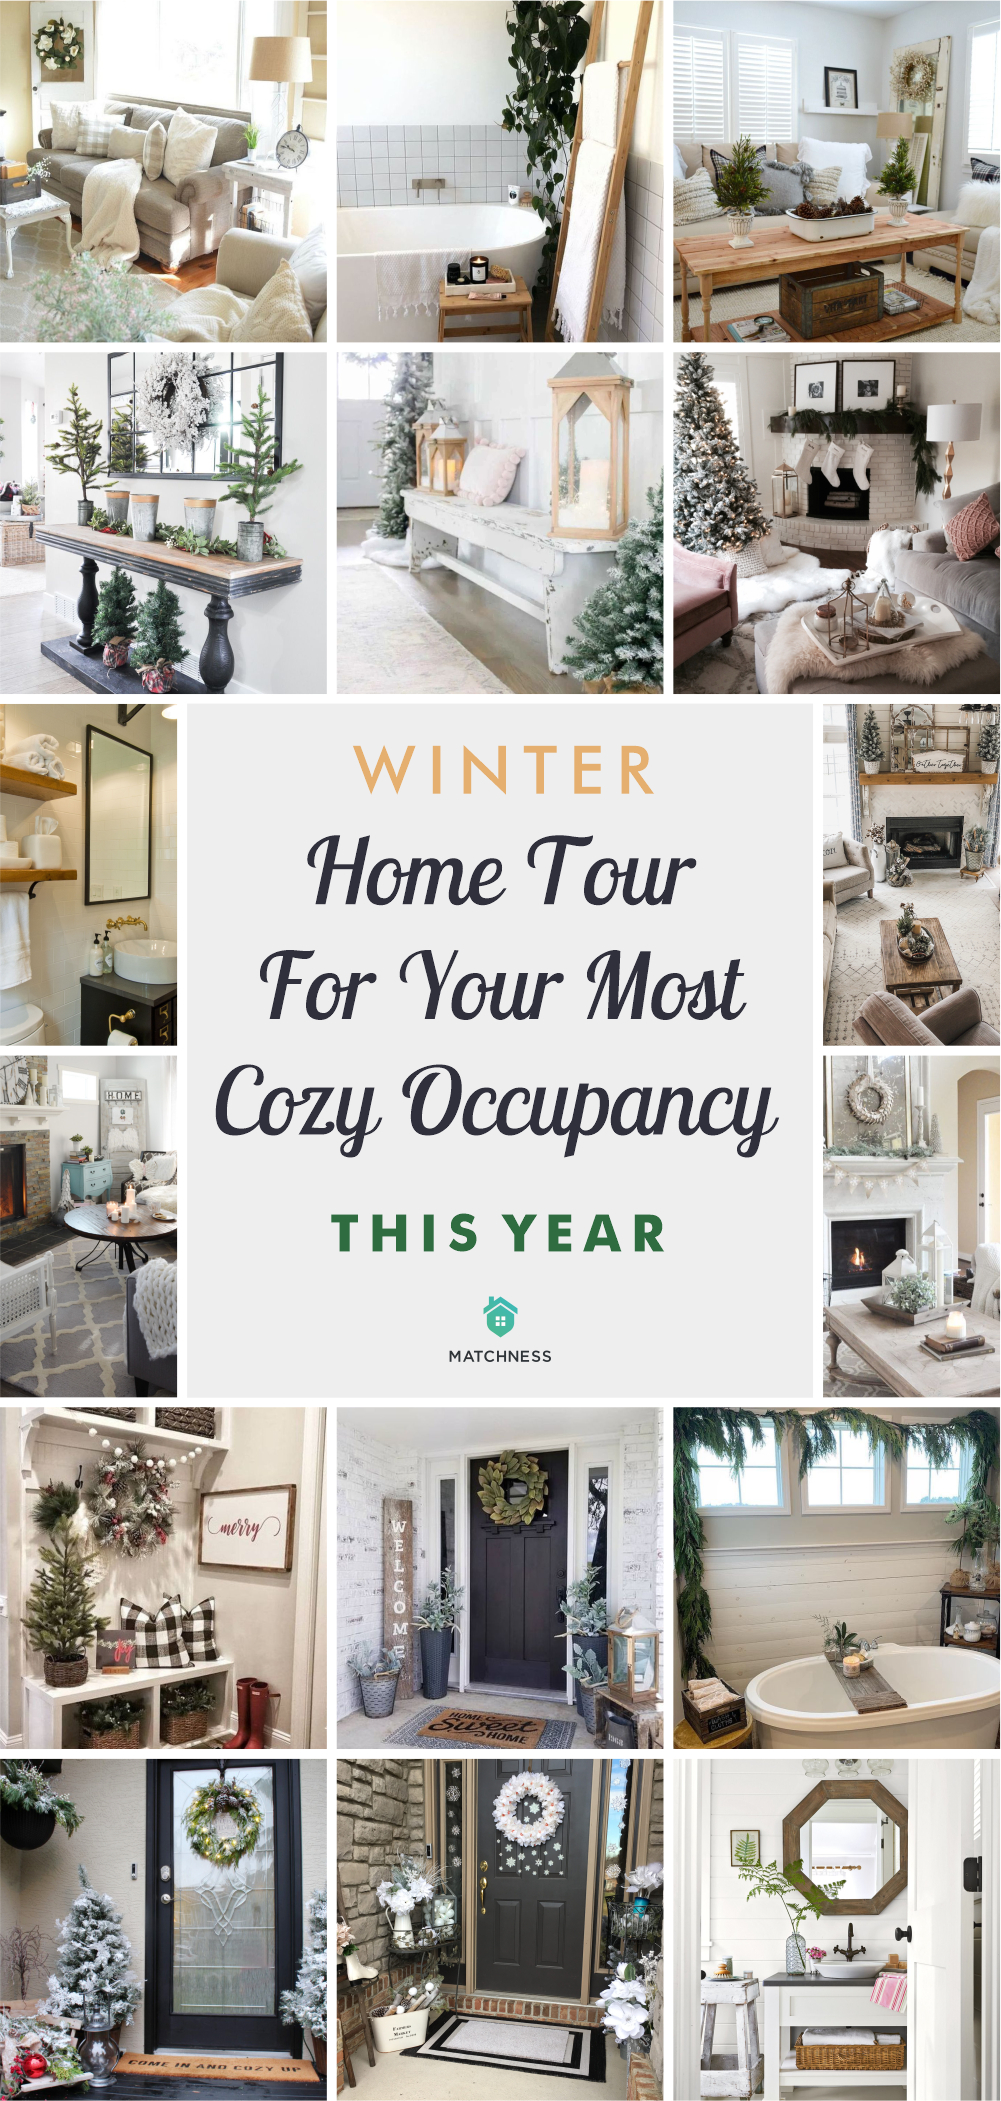 Winter home tour for your most cozy occupancy this year6